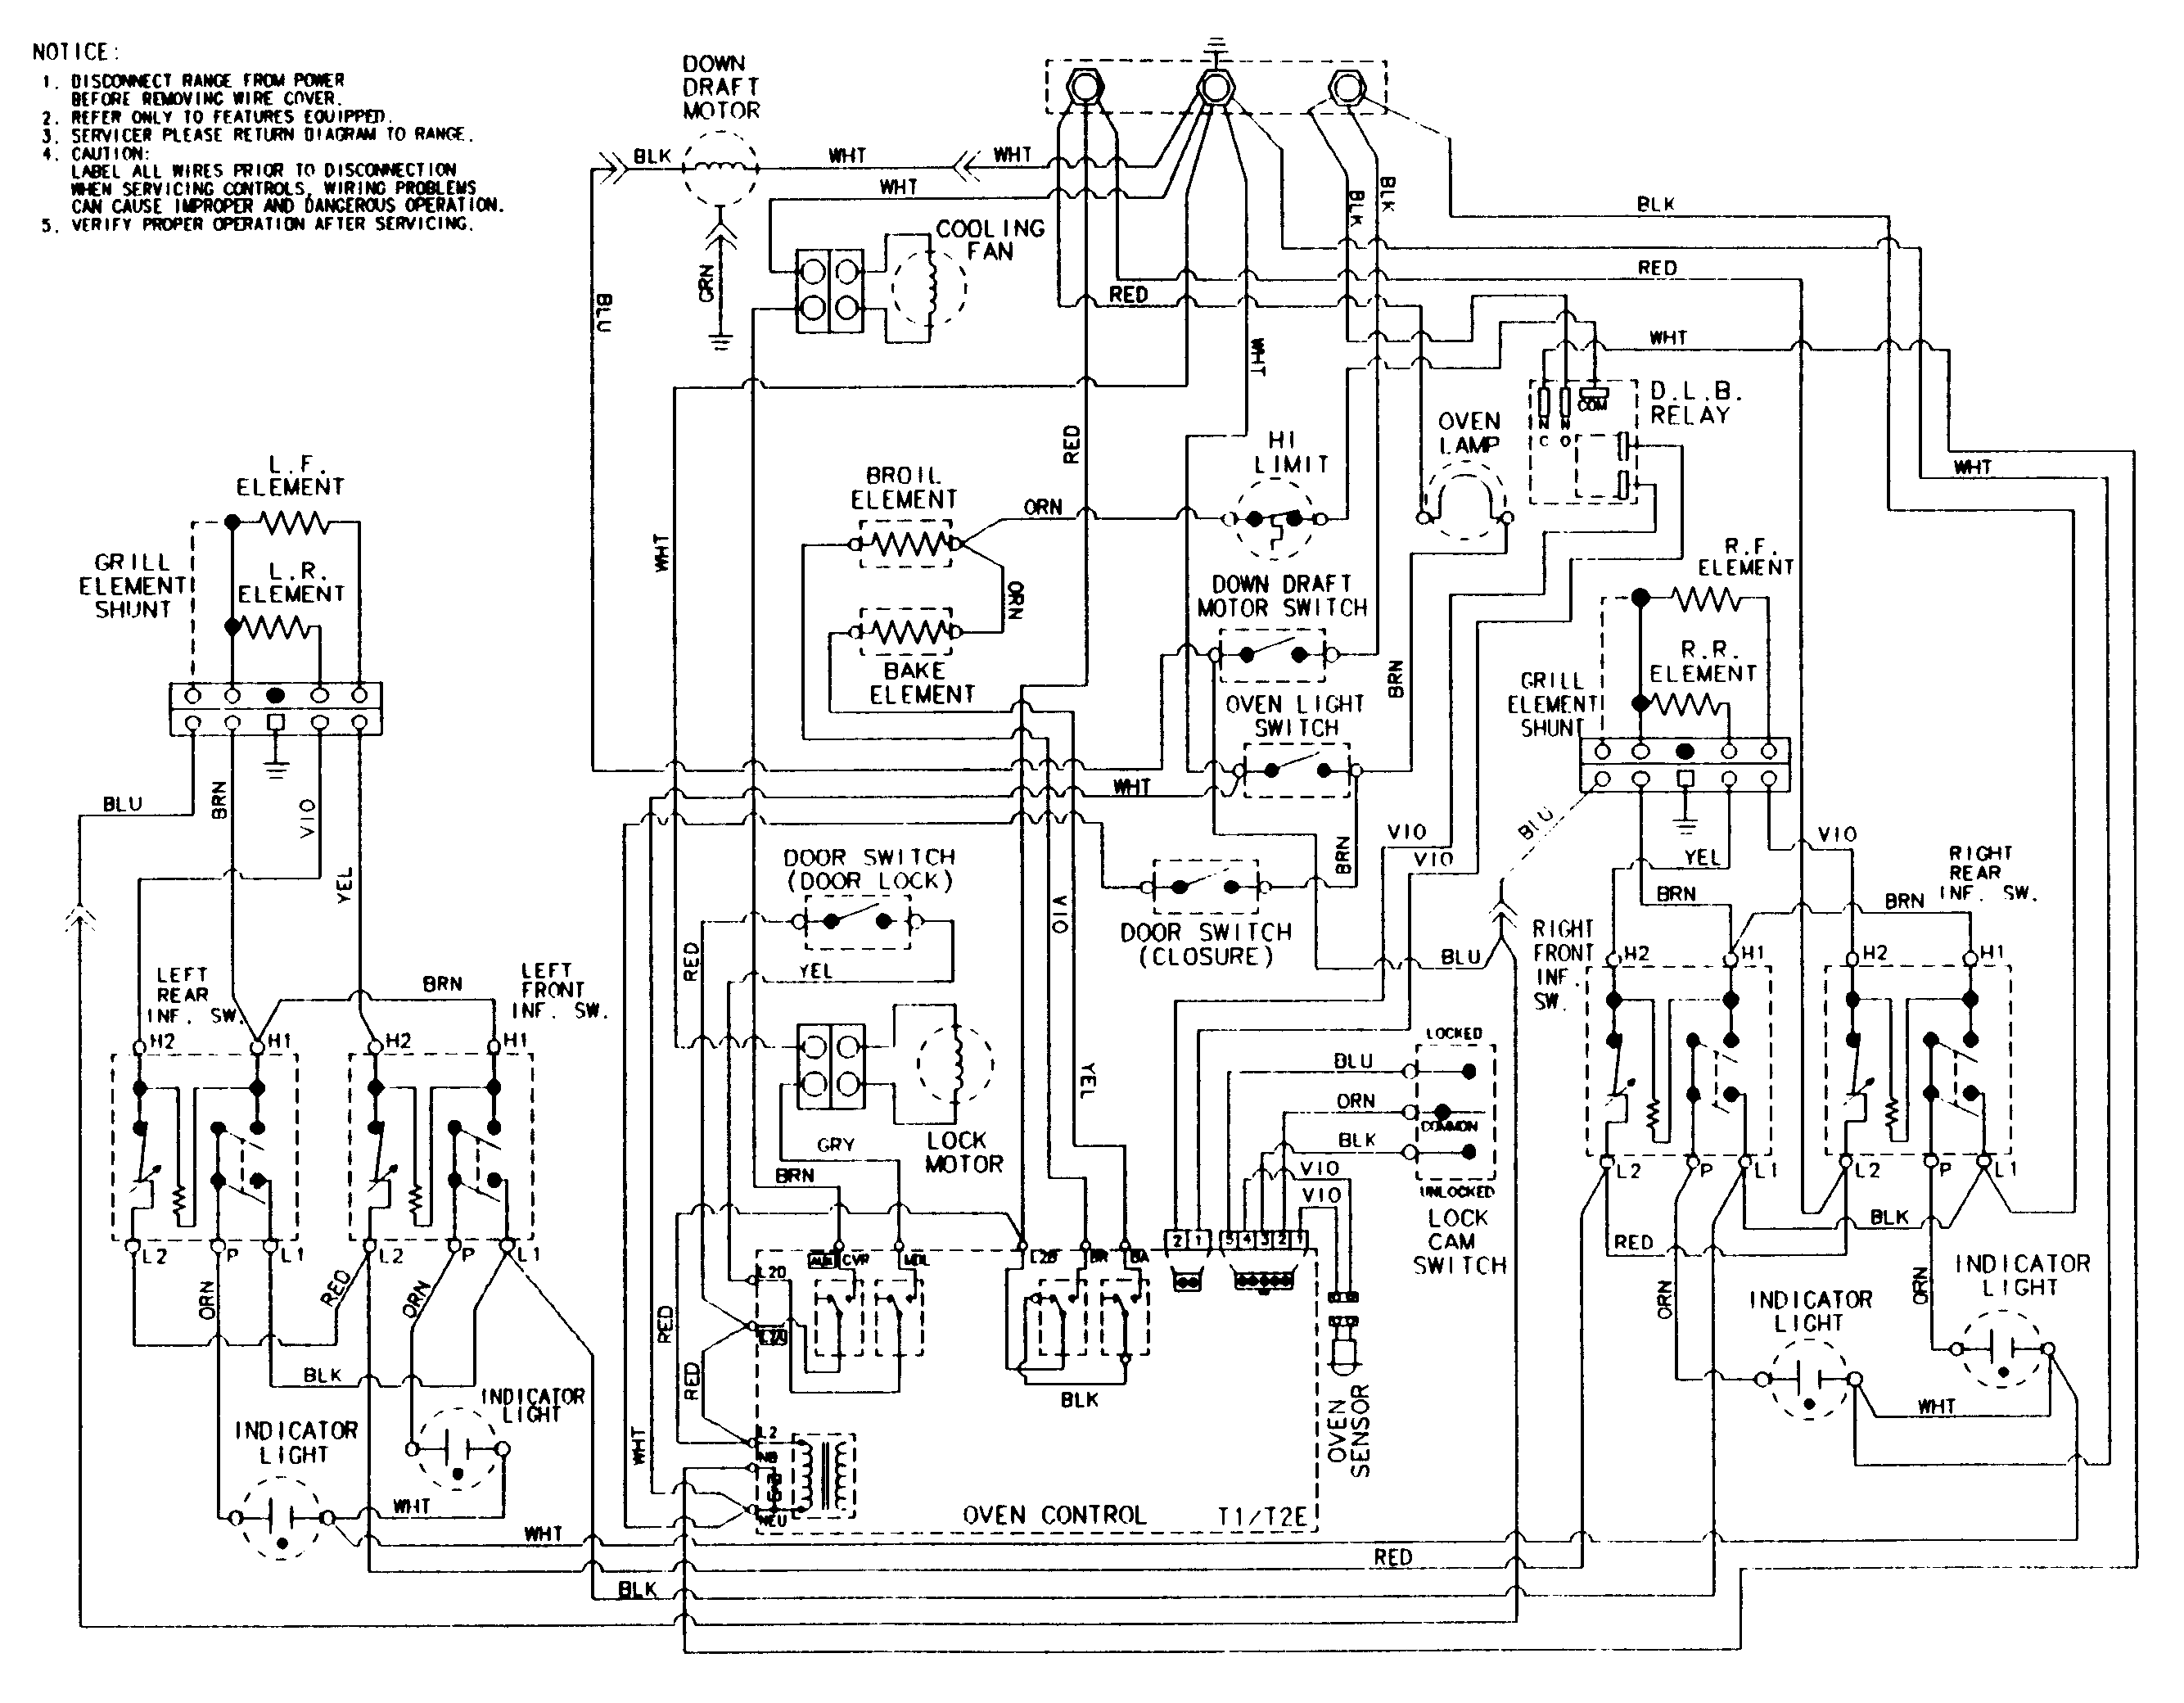 wiring information sve47100bc wc ser 14 parts maytag sve47100 electric slide in range timer stove clocks and Single Pole Switch Wiring Diagram at bakdesigns.co